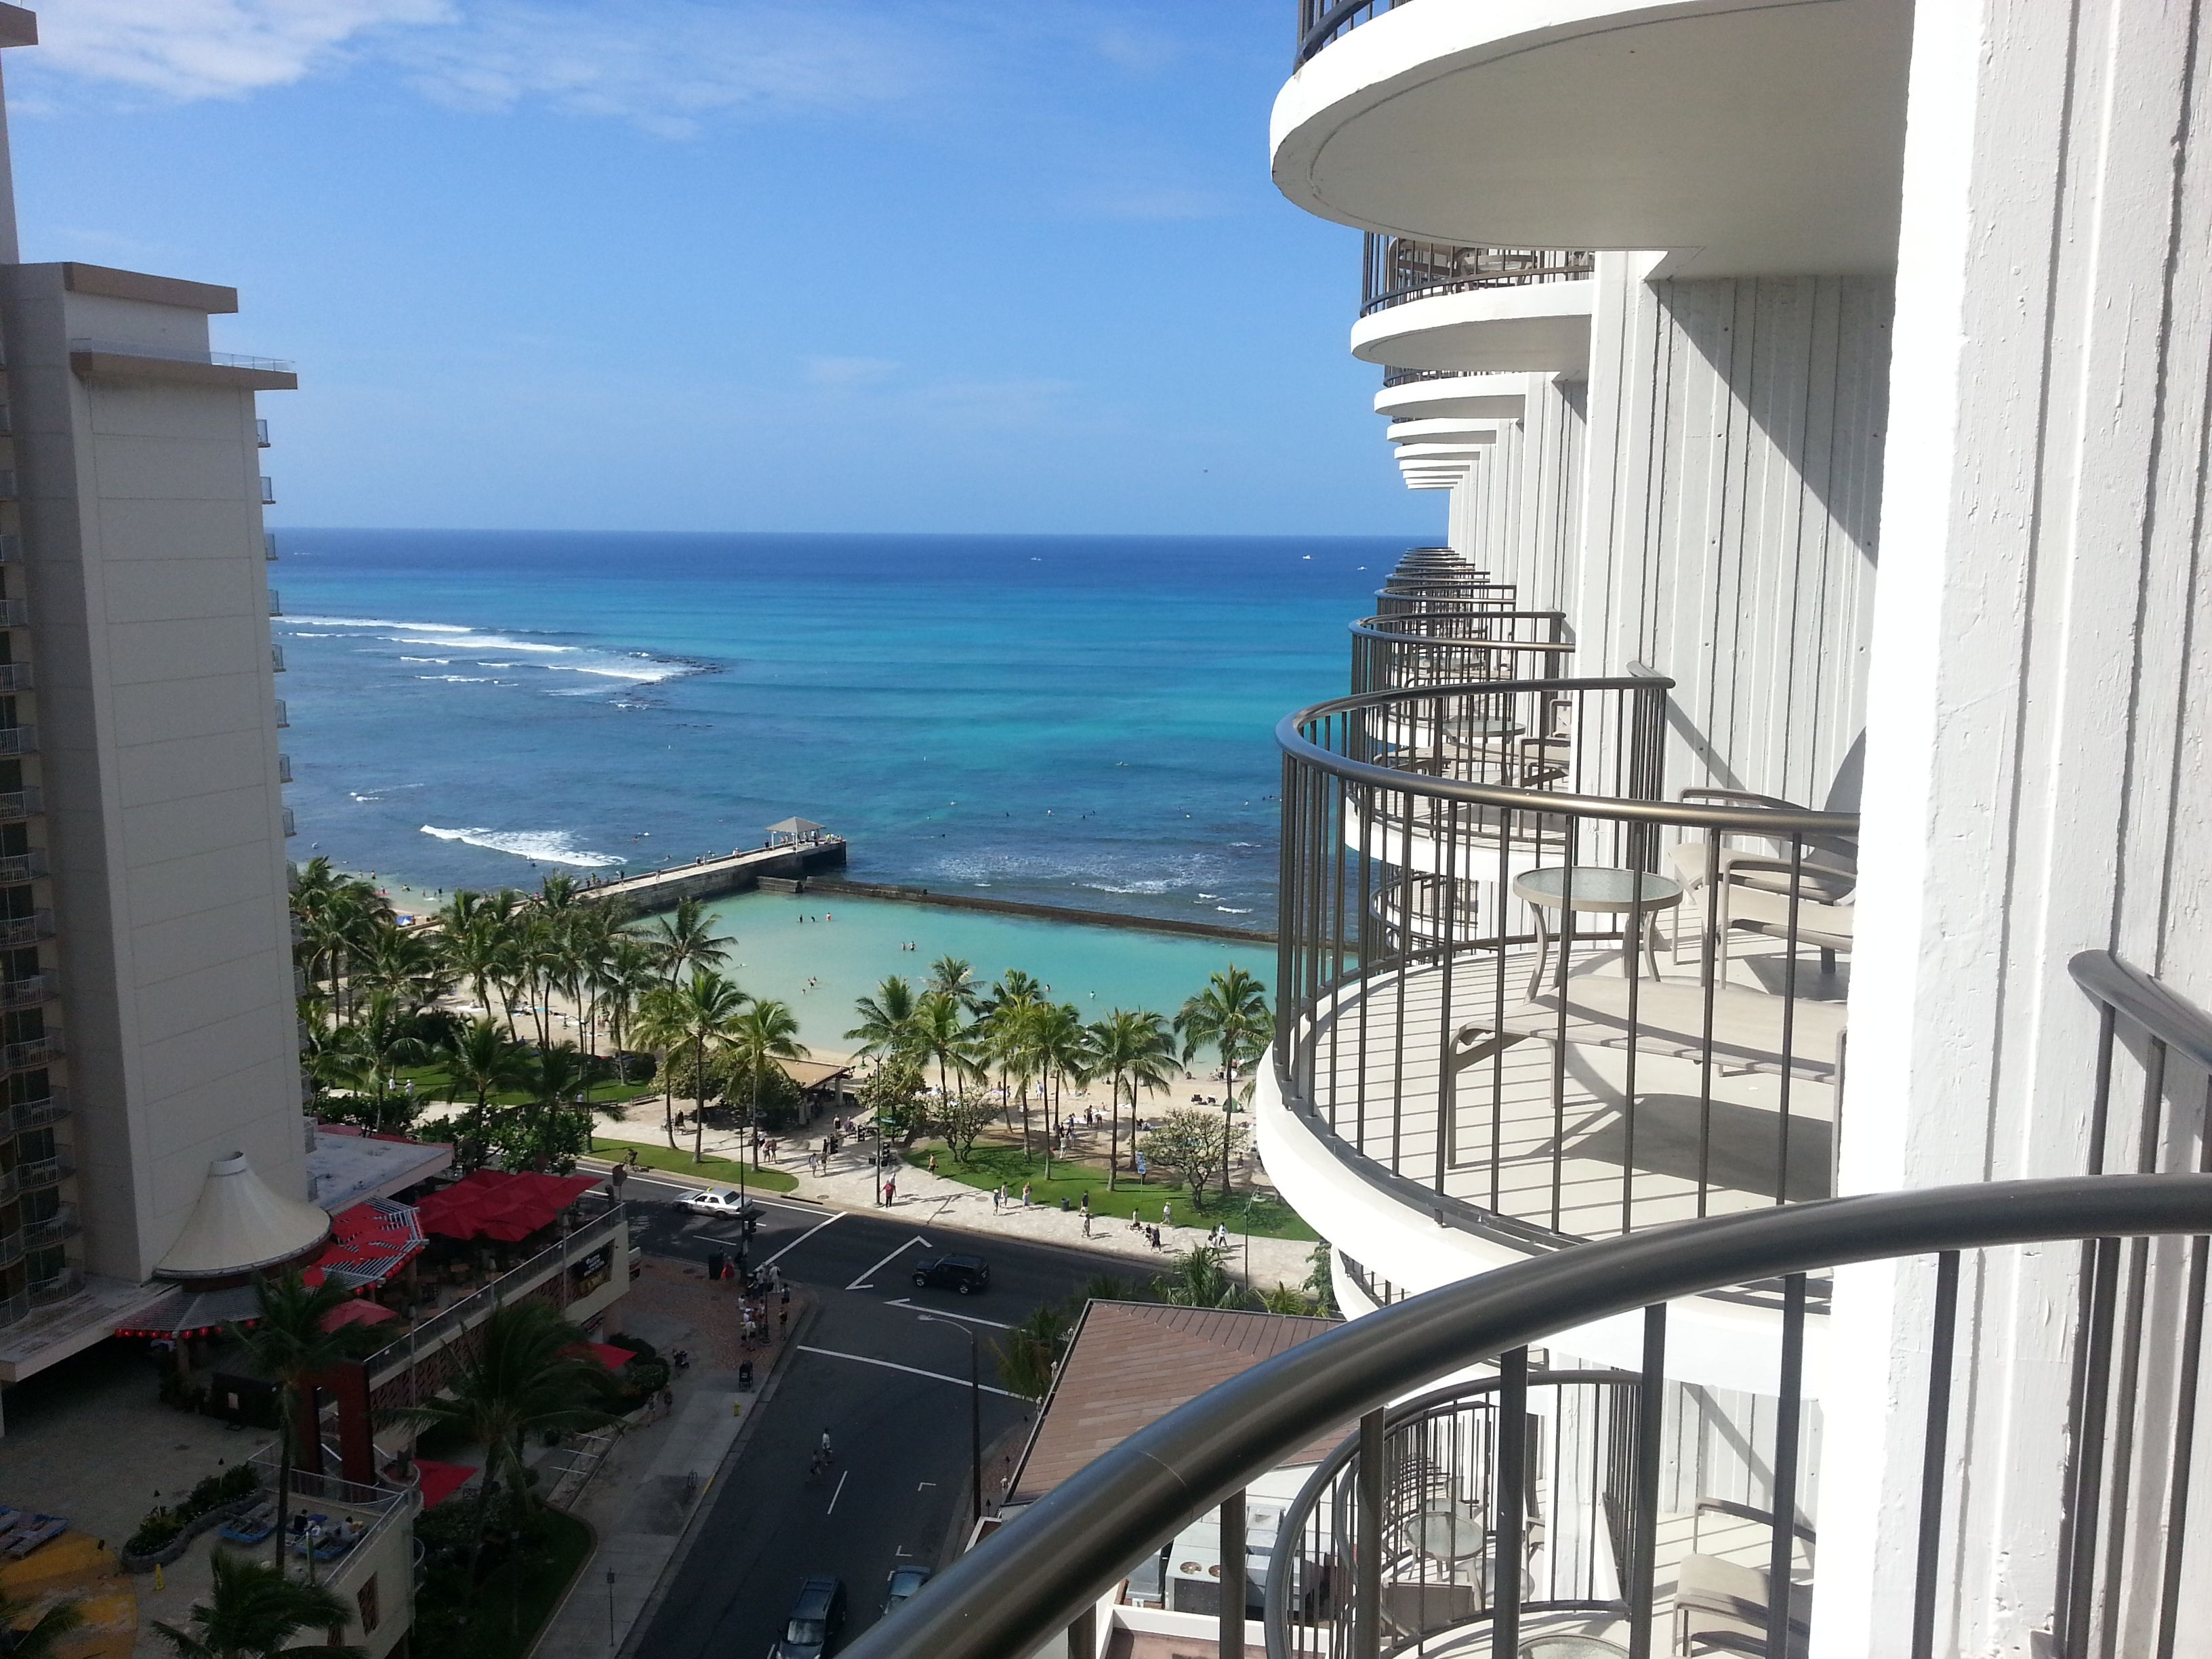 The Waikiki Beach Marriott Resort And Spa